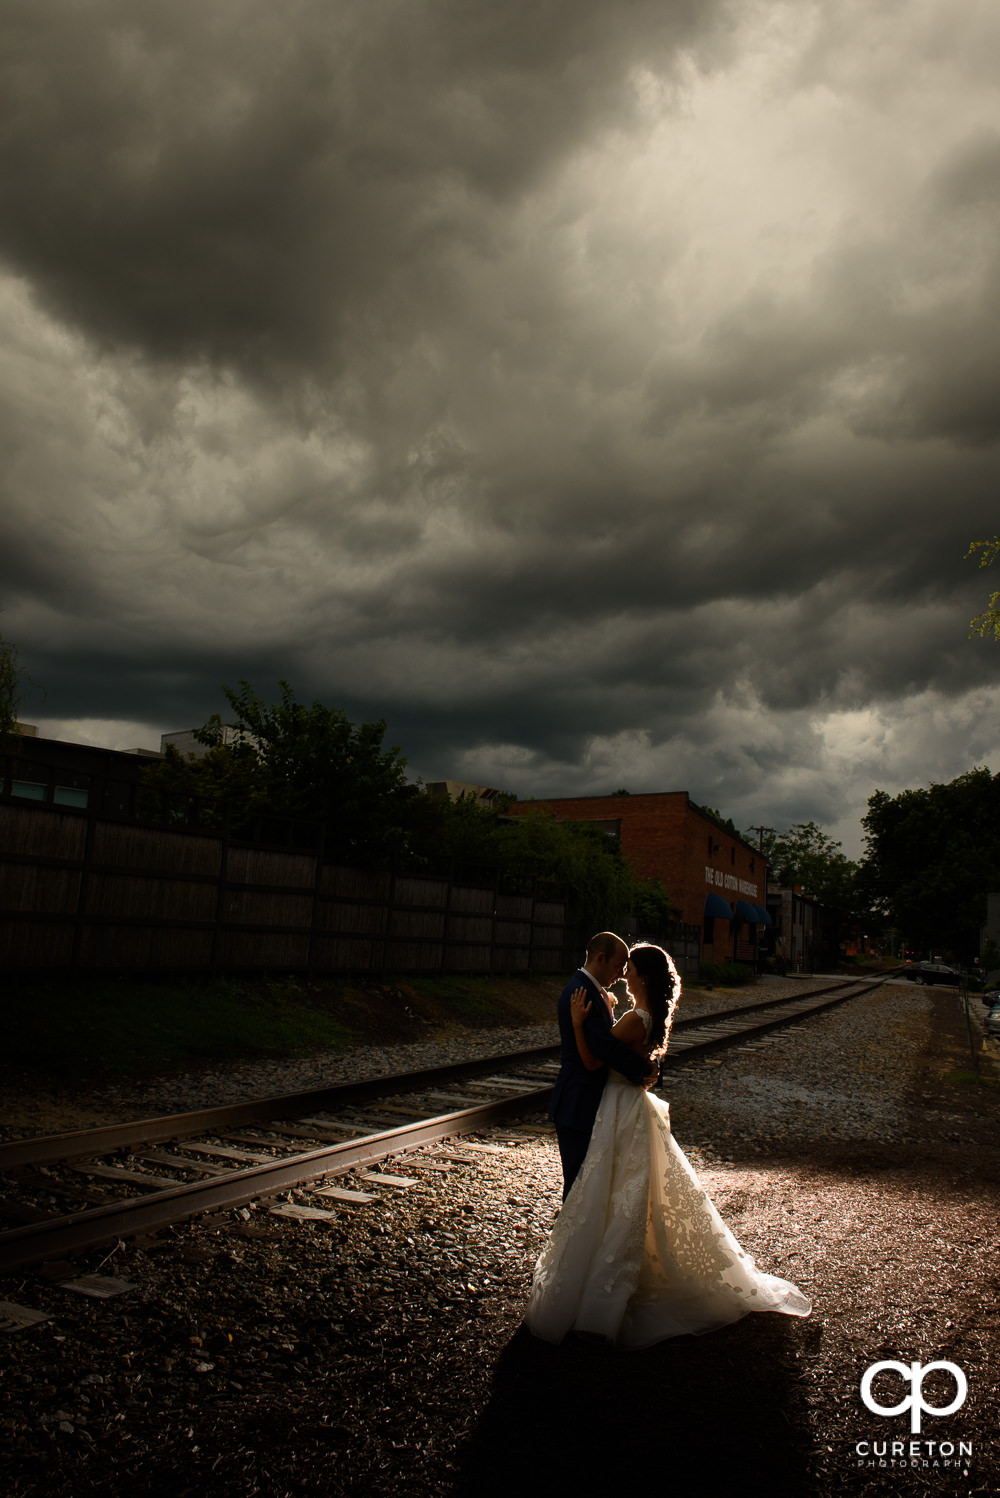 Bride and groom at sunset outside their wedding reception at The Old Cigar Warehouse in downtown Greenville.